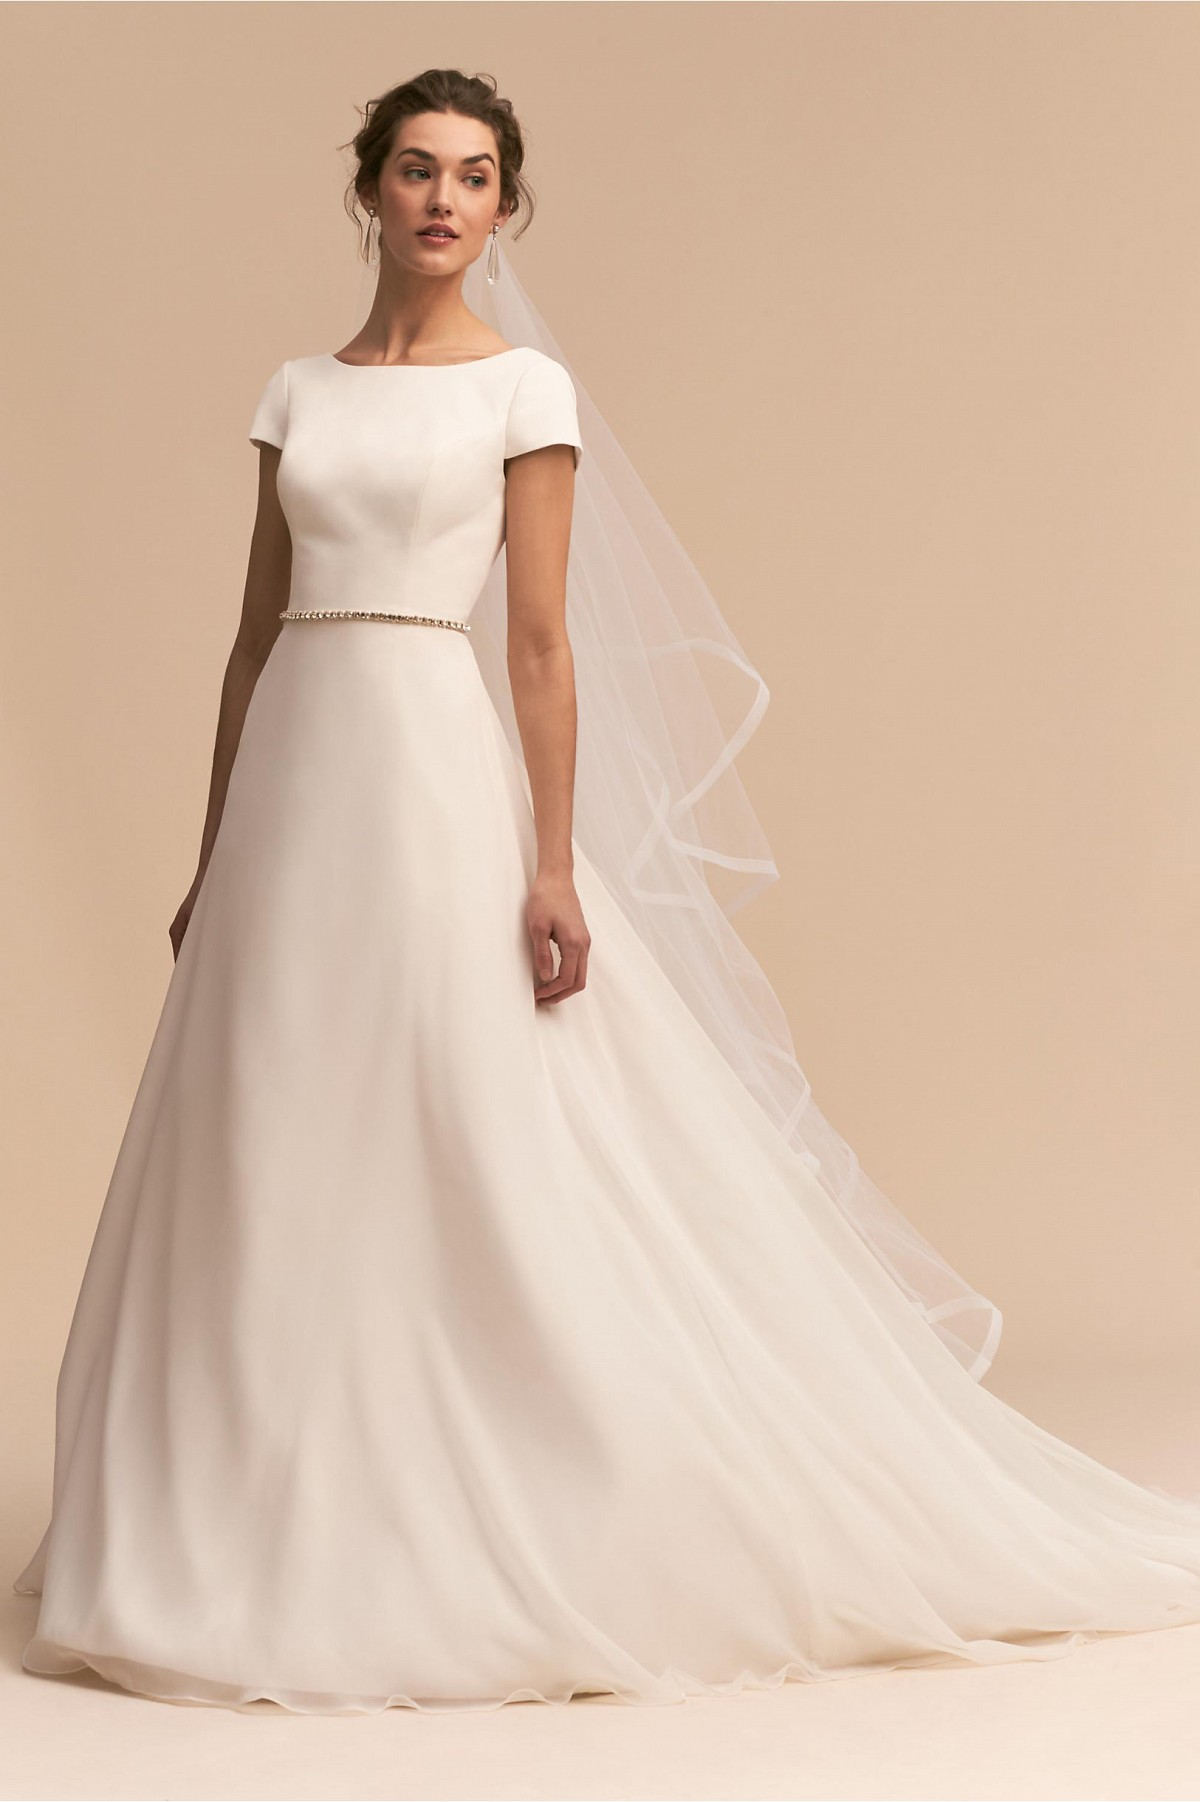 10 Clean, Simple Bridal Gowns Inspired By Meghan Markle